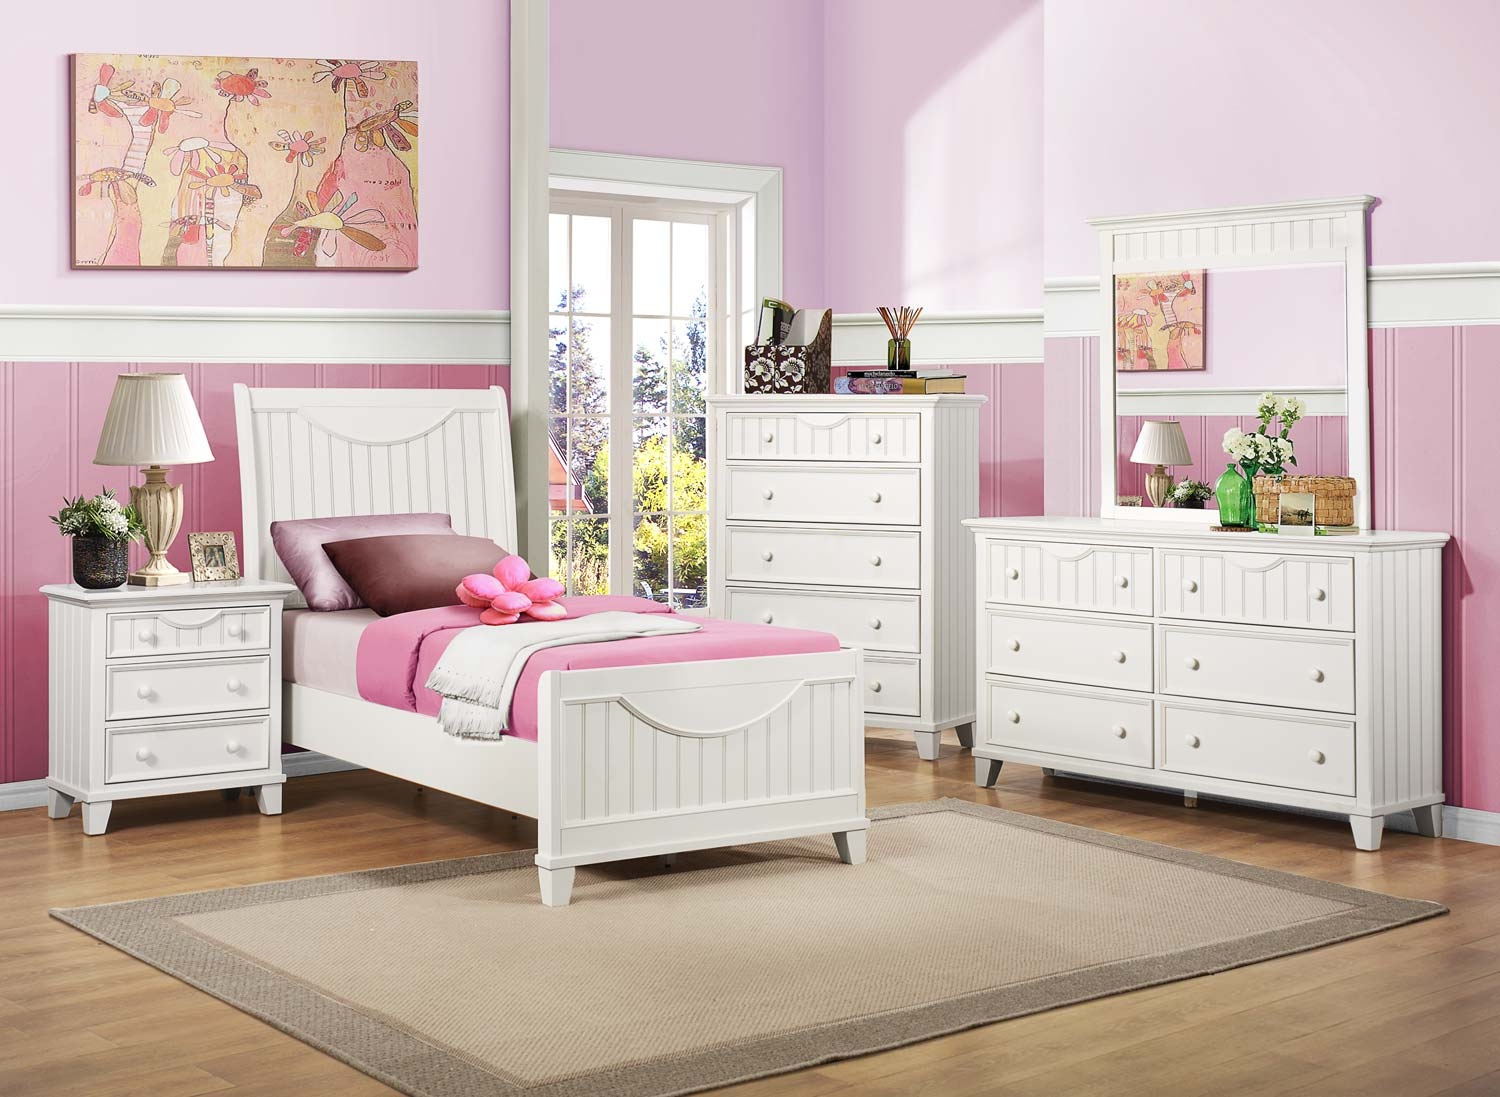 Homelegance Alyssa Youth Bedroom Set - White B2136TW-BED-SET